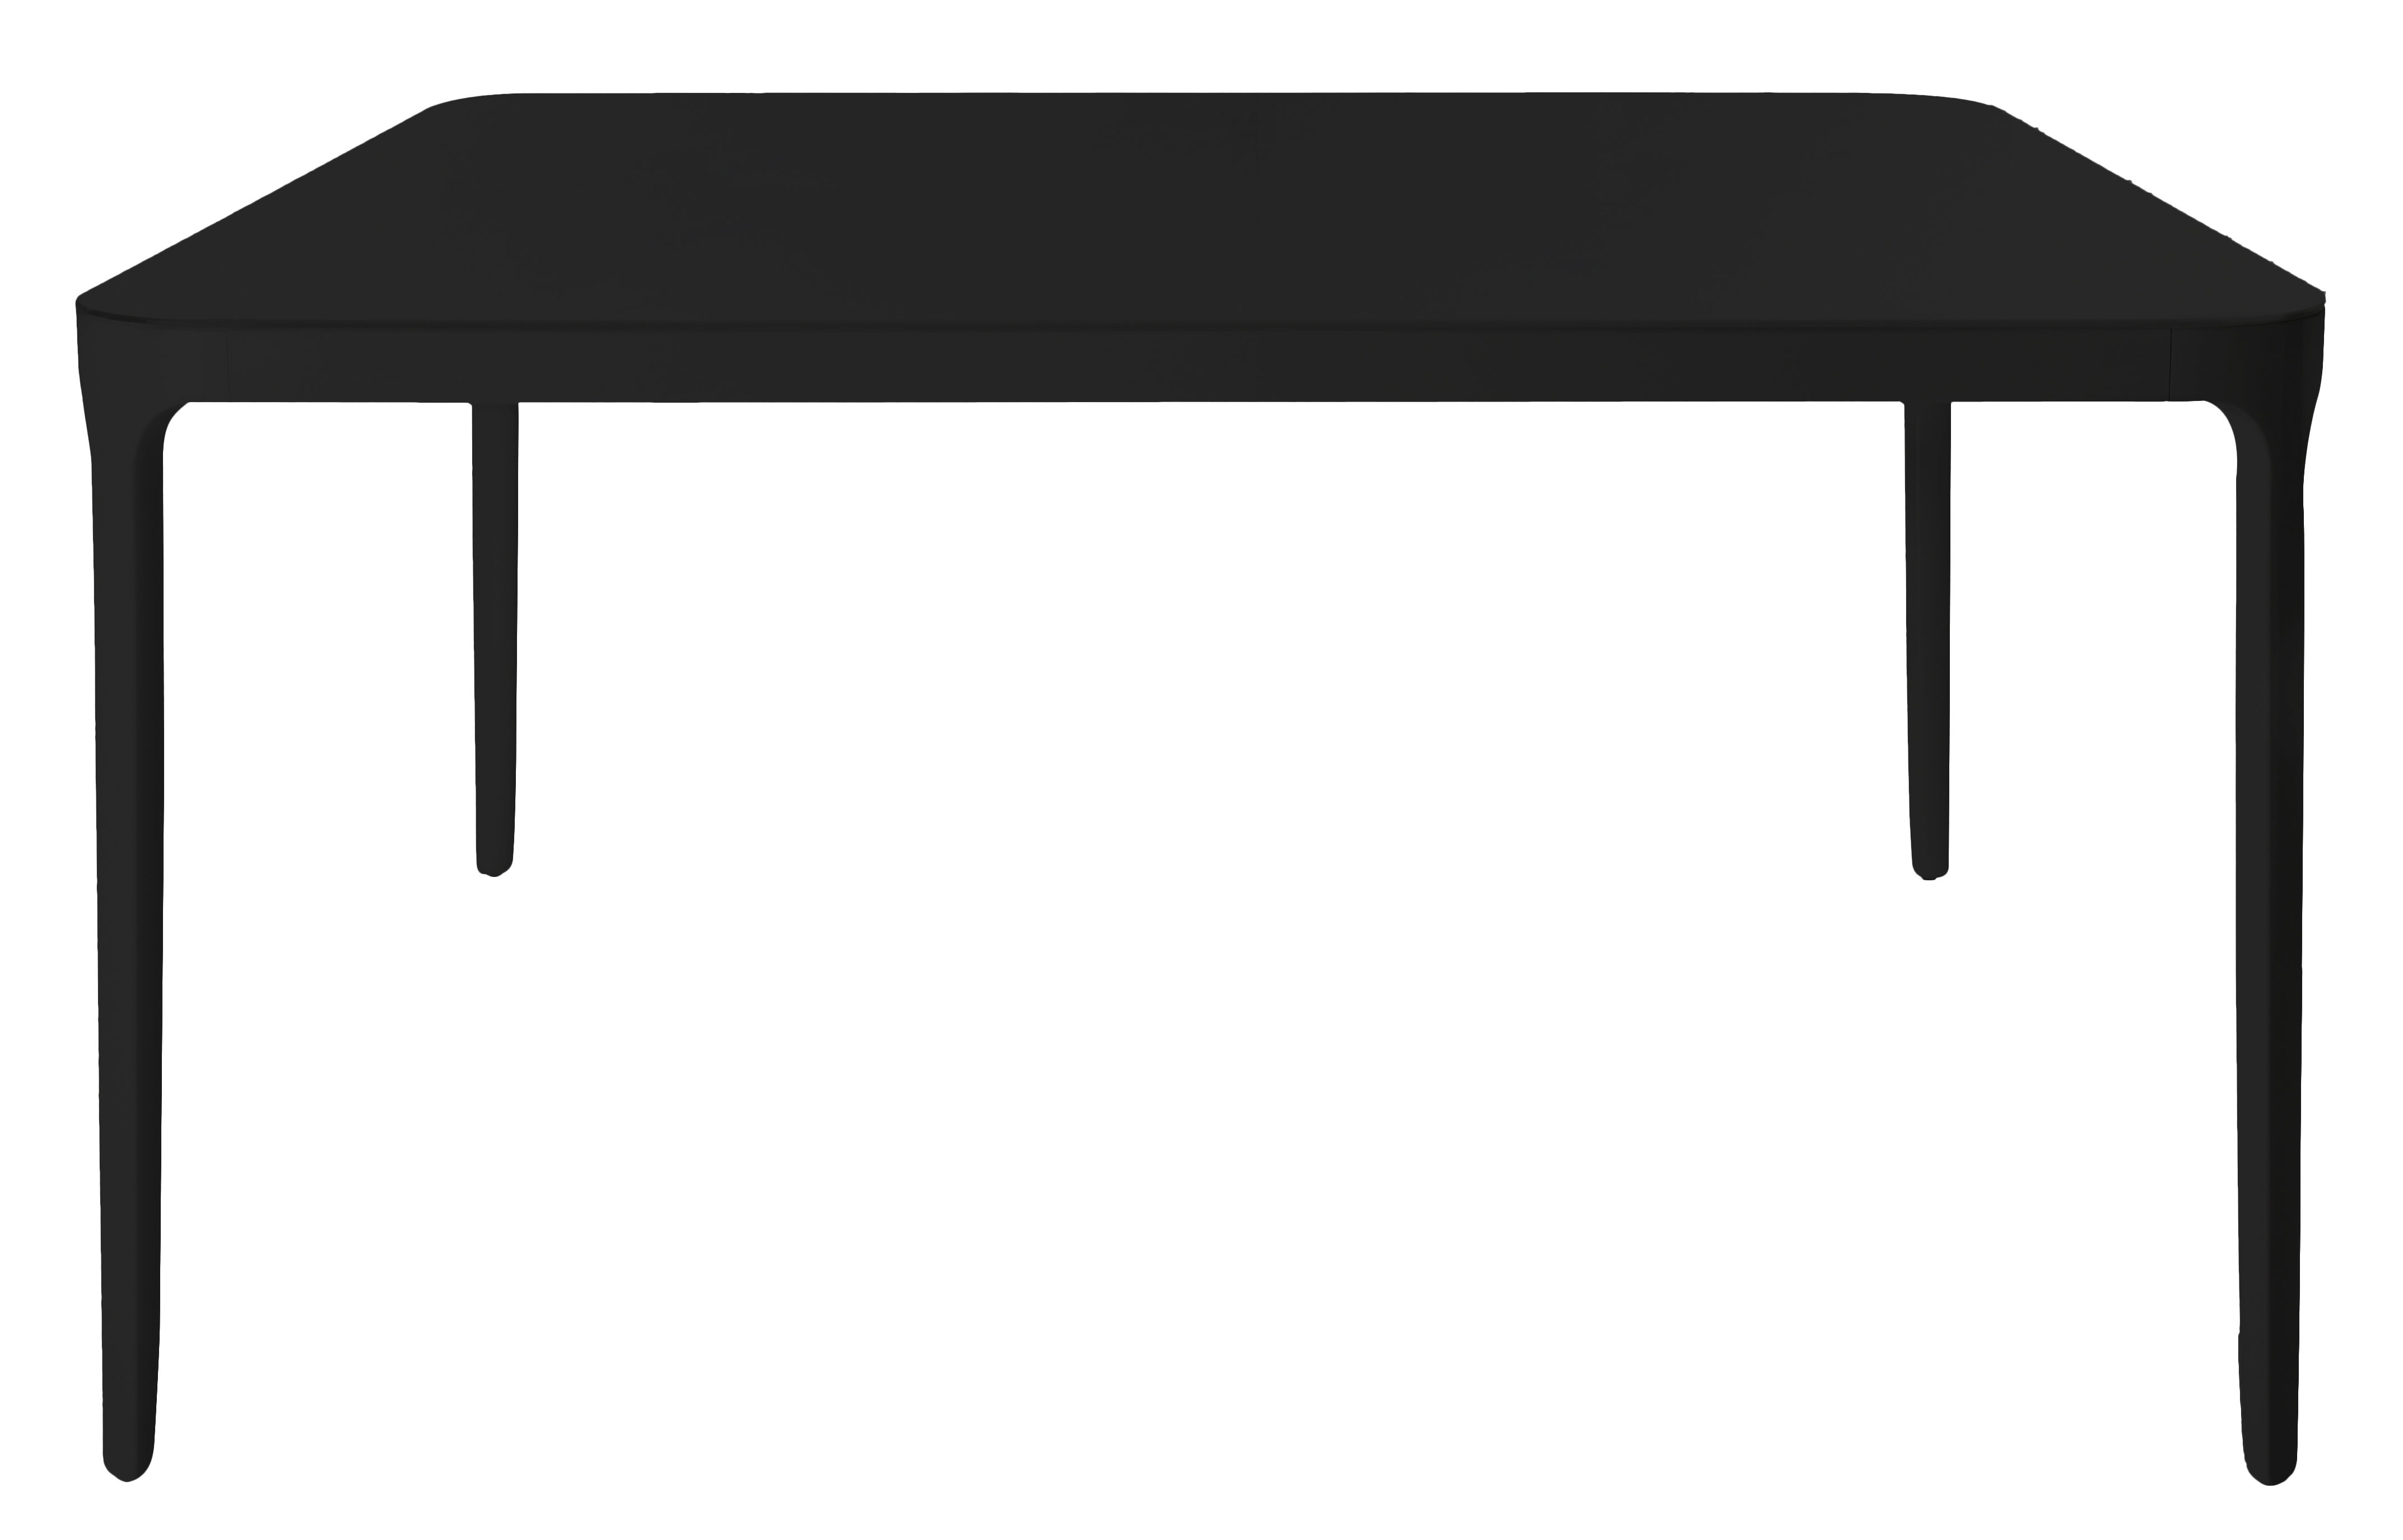 table vanity 140 x 140 cm noir 140 x 140 cm magis. Black Bedroom Furniture Sets. Home Design Ideas